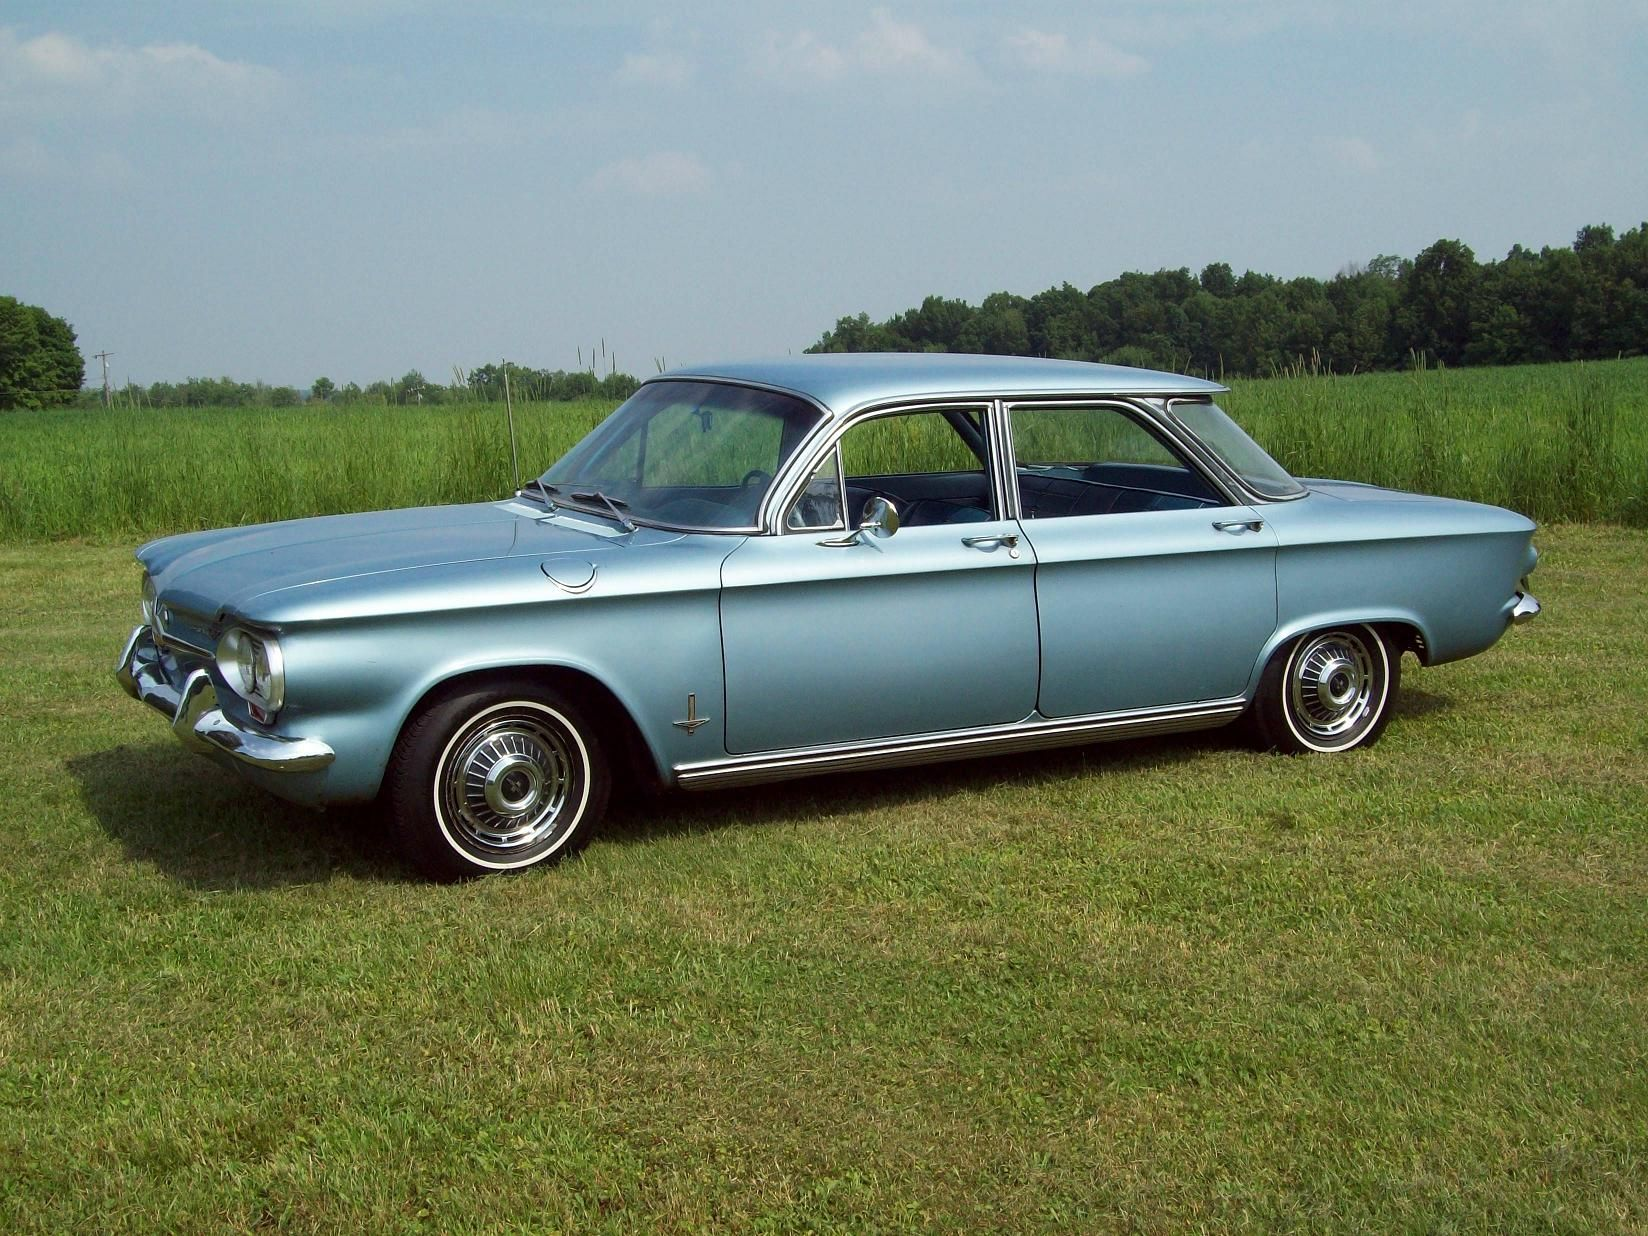 Corvair Monza Four Door Sedan The Car I Learned To Drive In